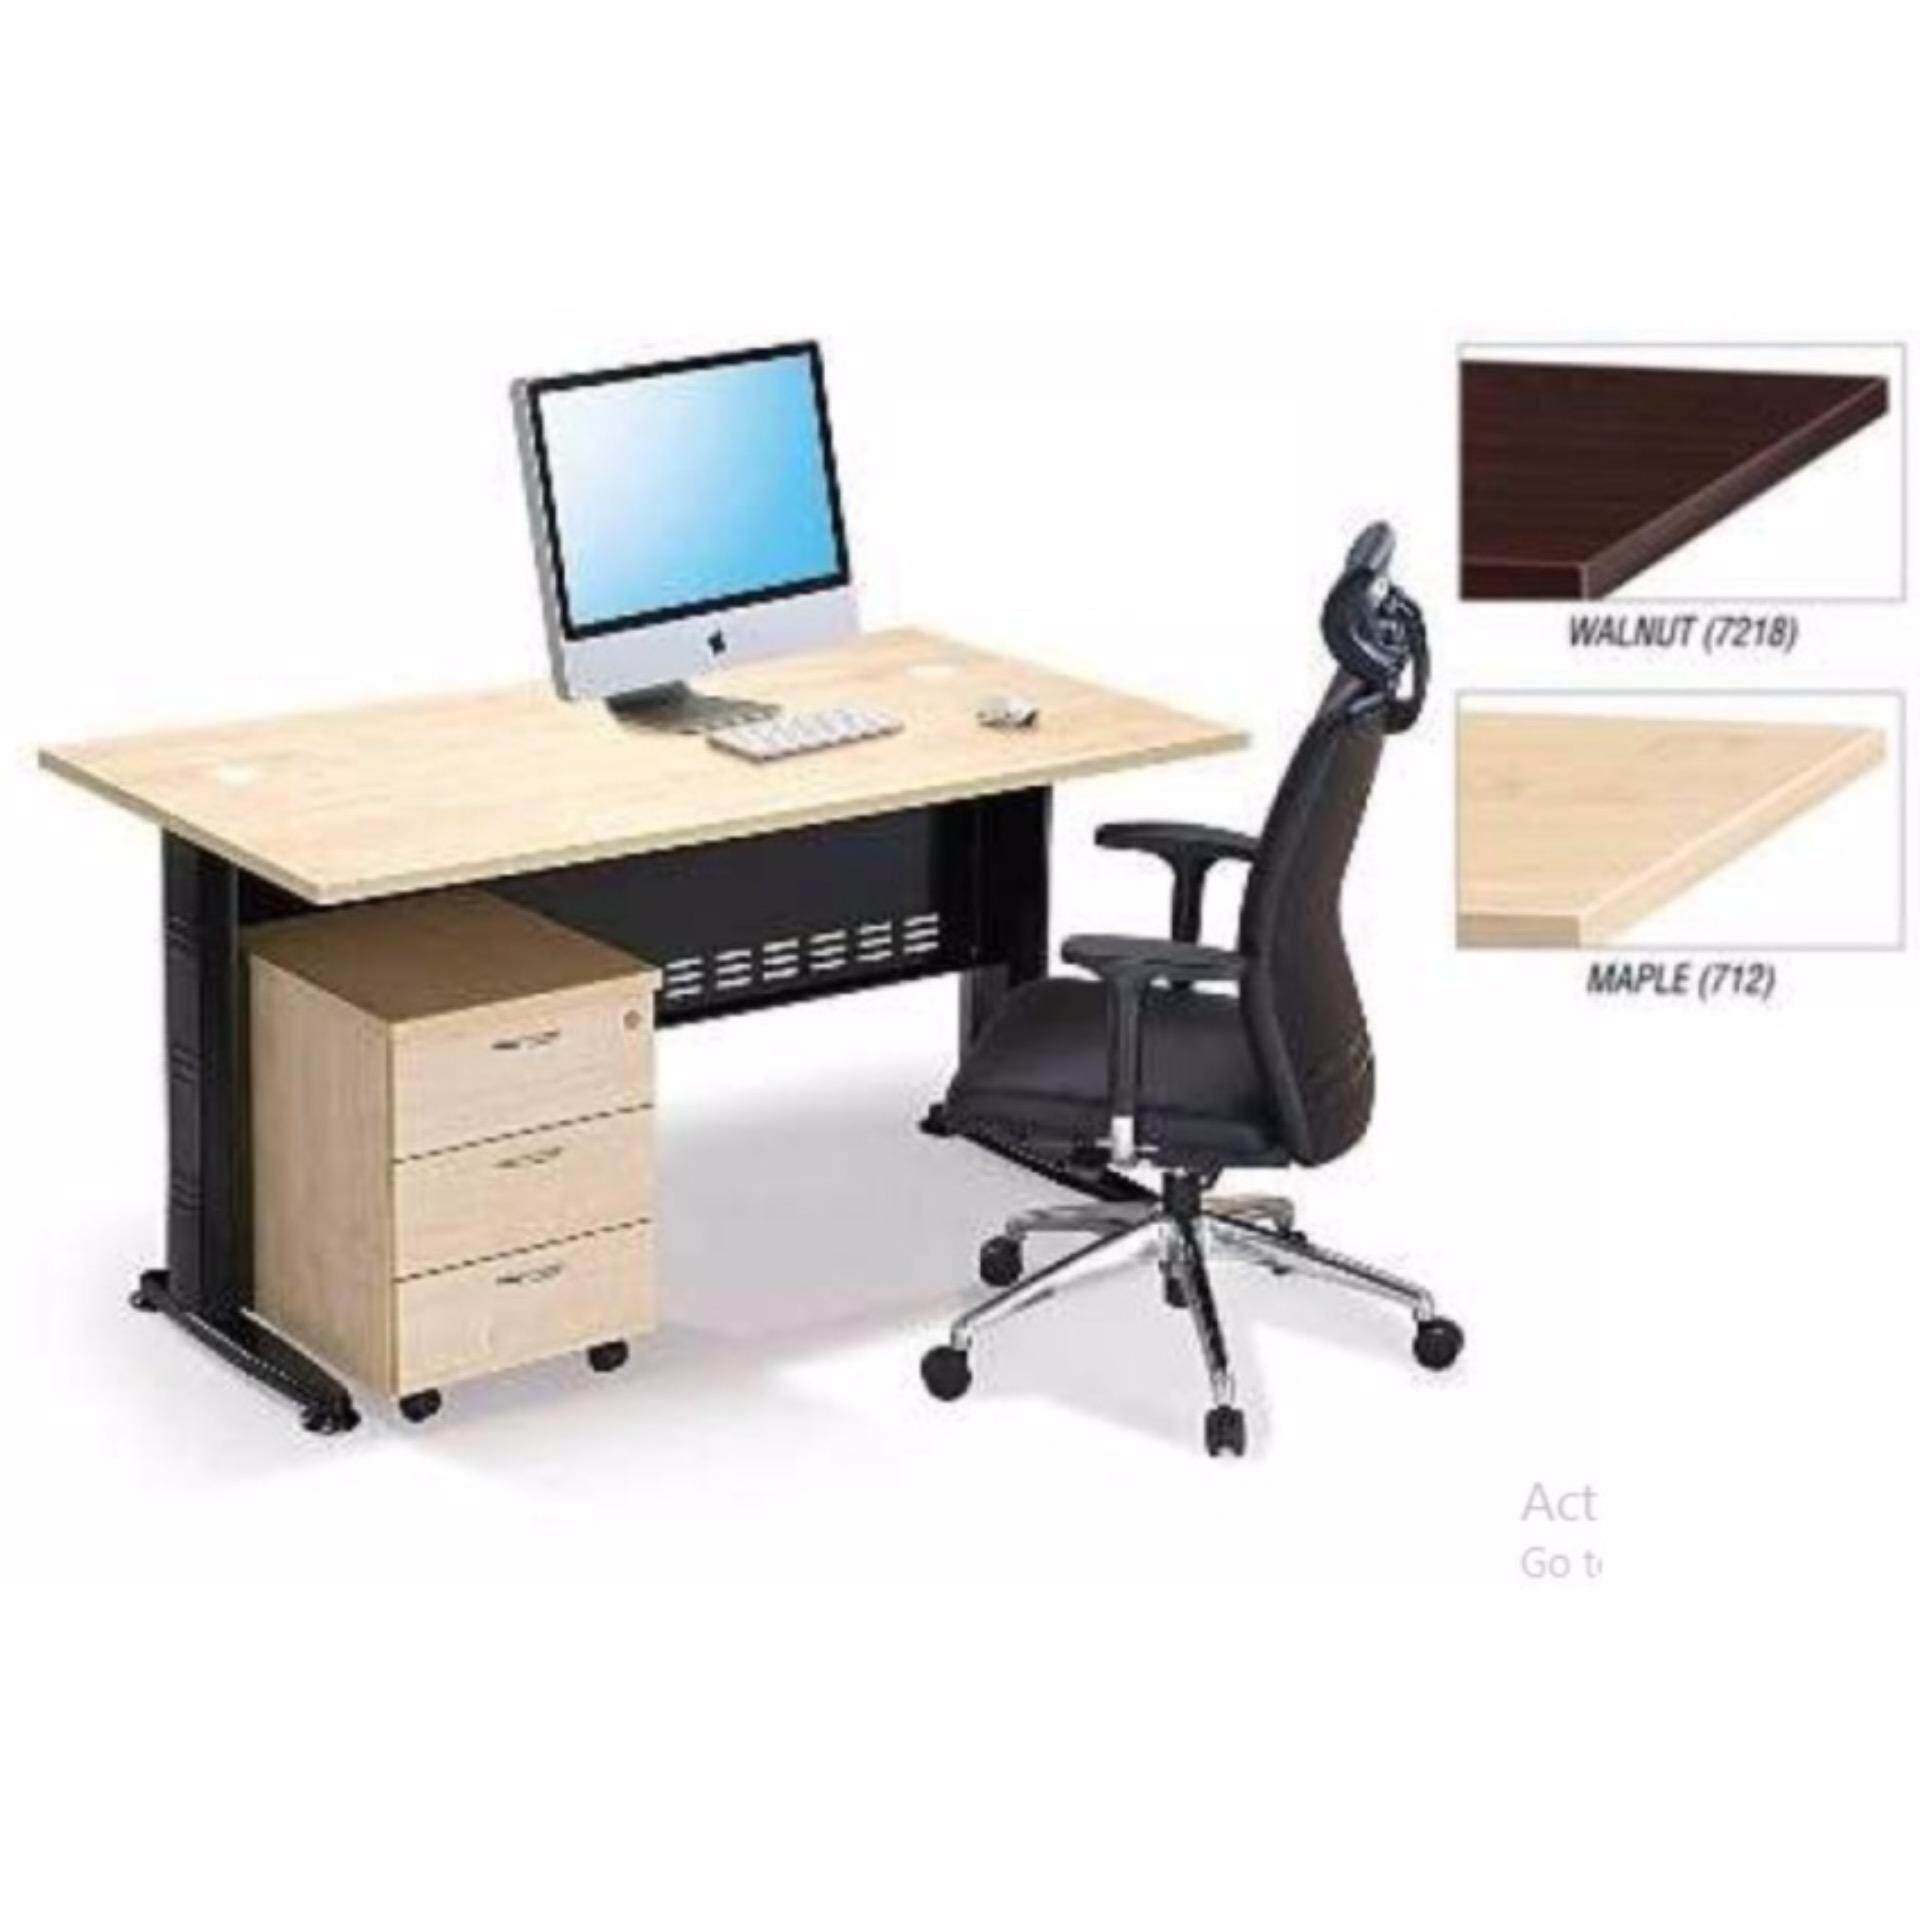 office meeting. DECO OFFICE TABLE WITH MOBILE DRAWERS DESK MEETING DISCUSSION WRITING STUDY Office Meeting